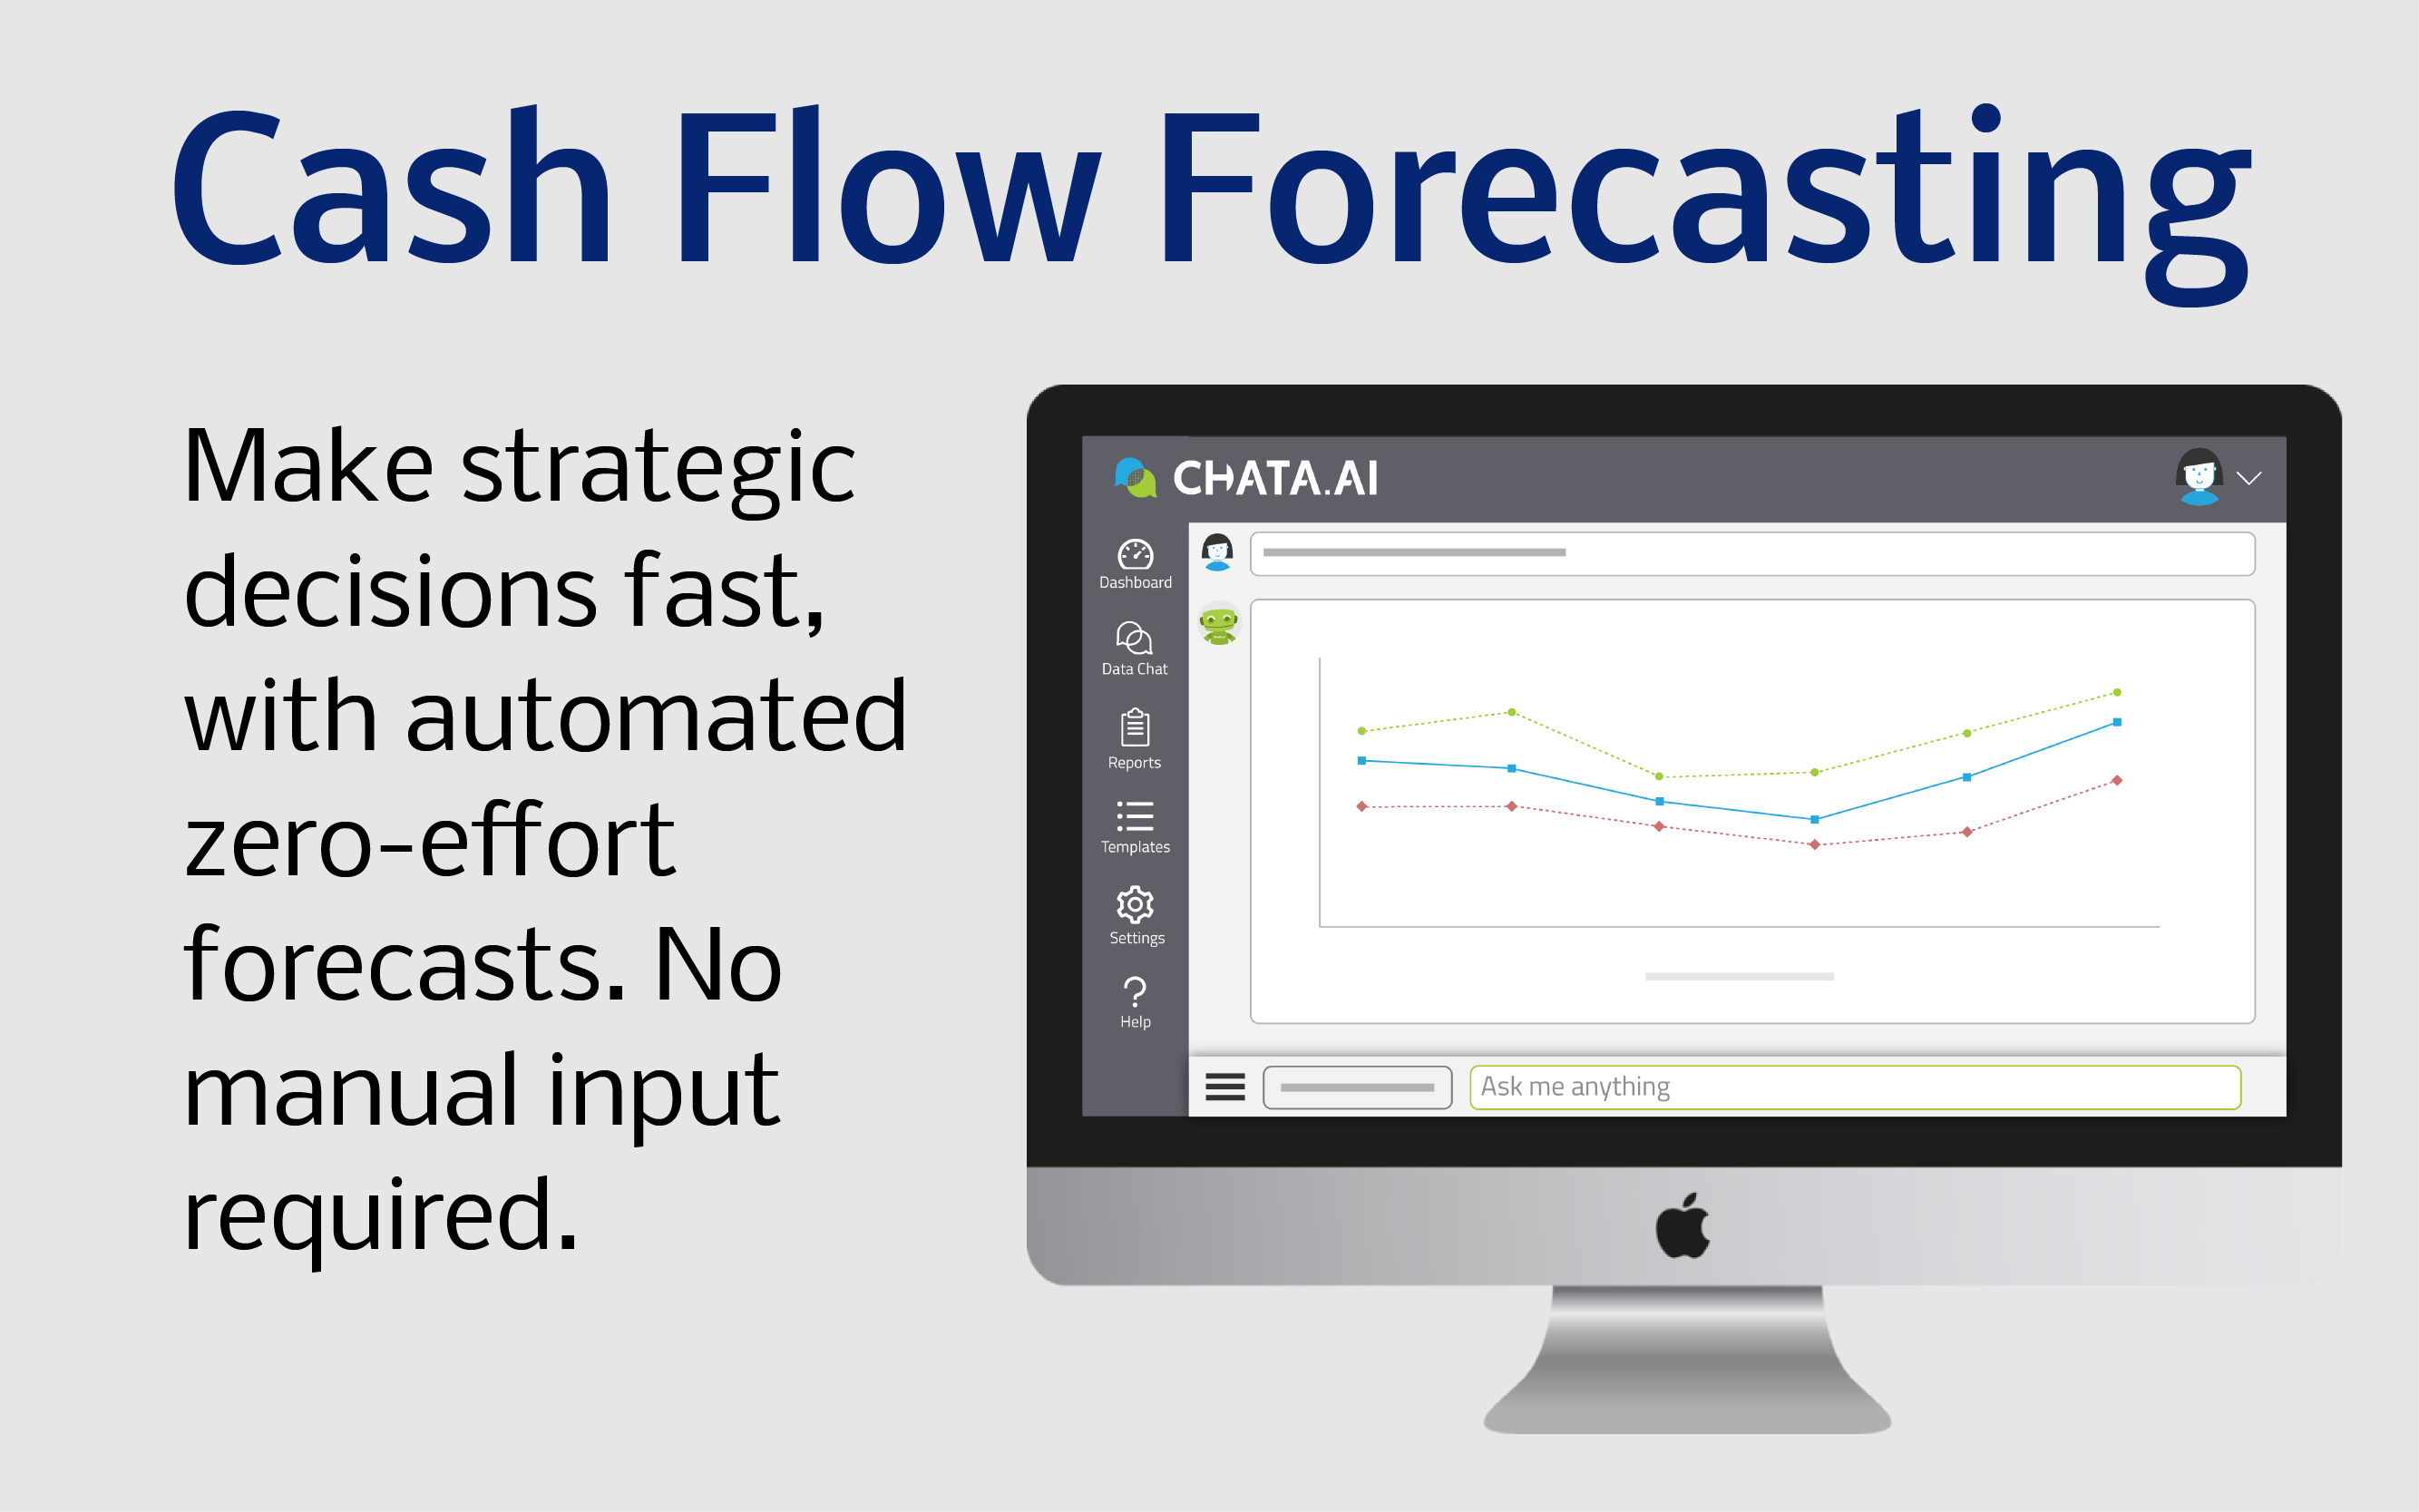 Cash Flow Forecasting app card Image